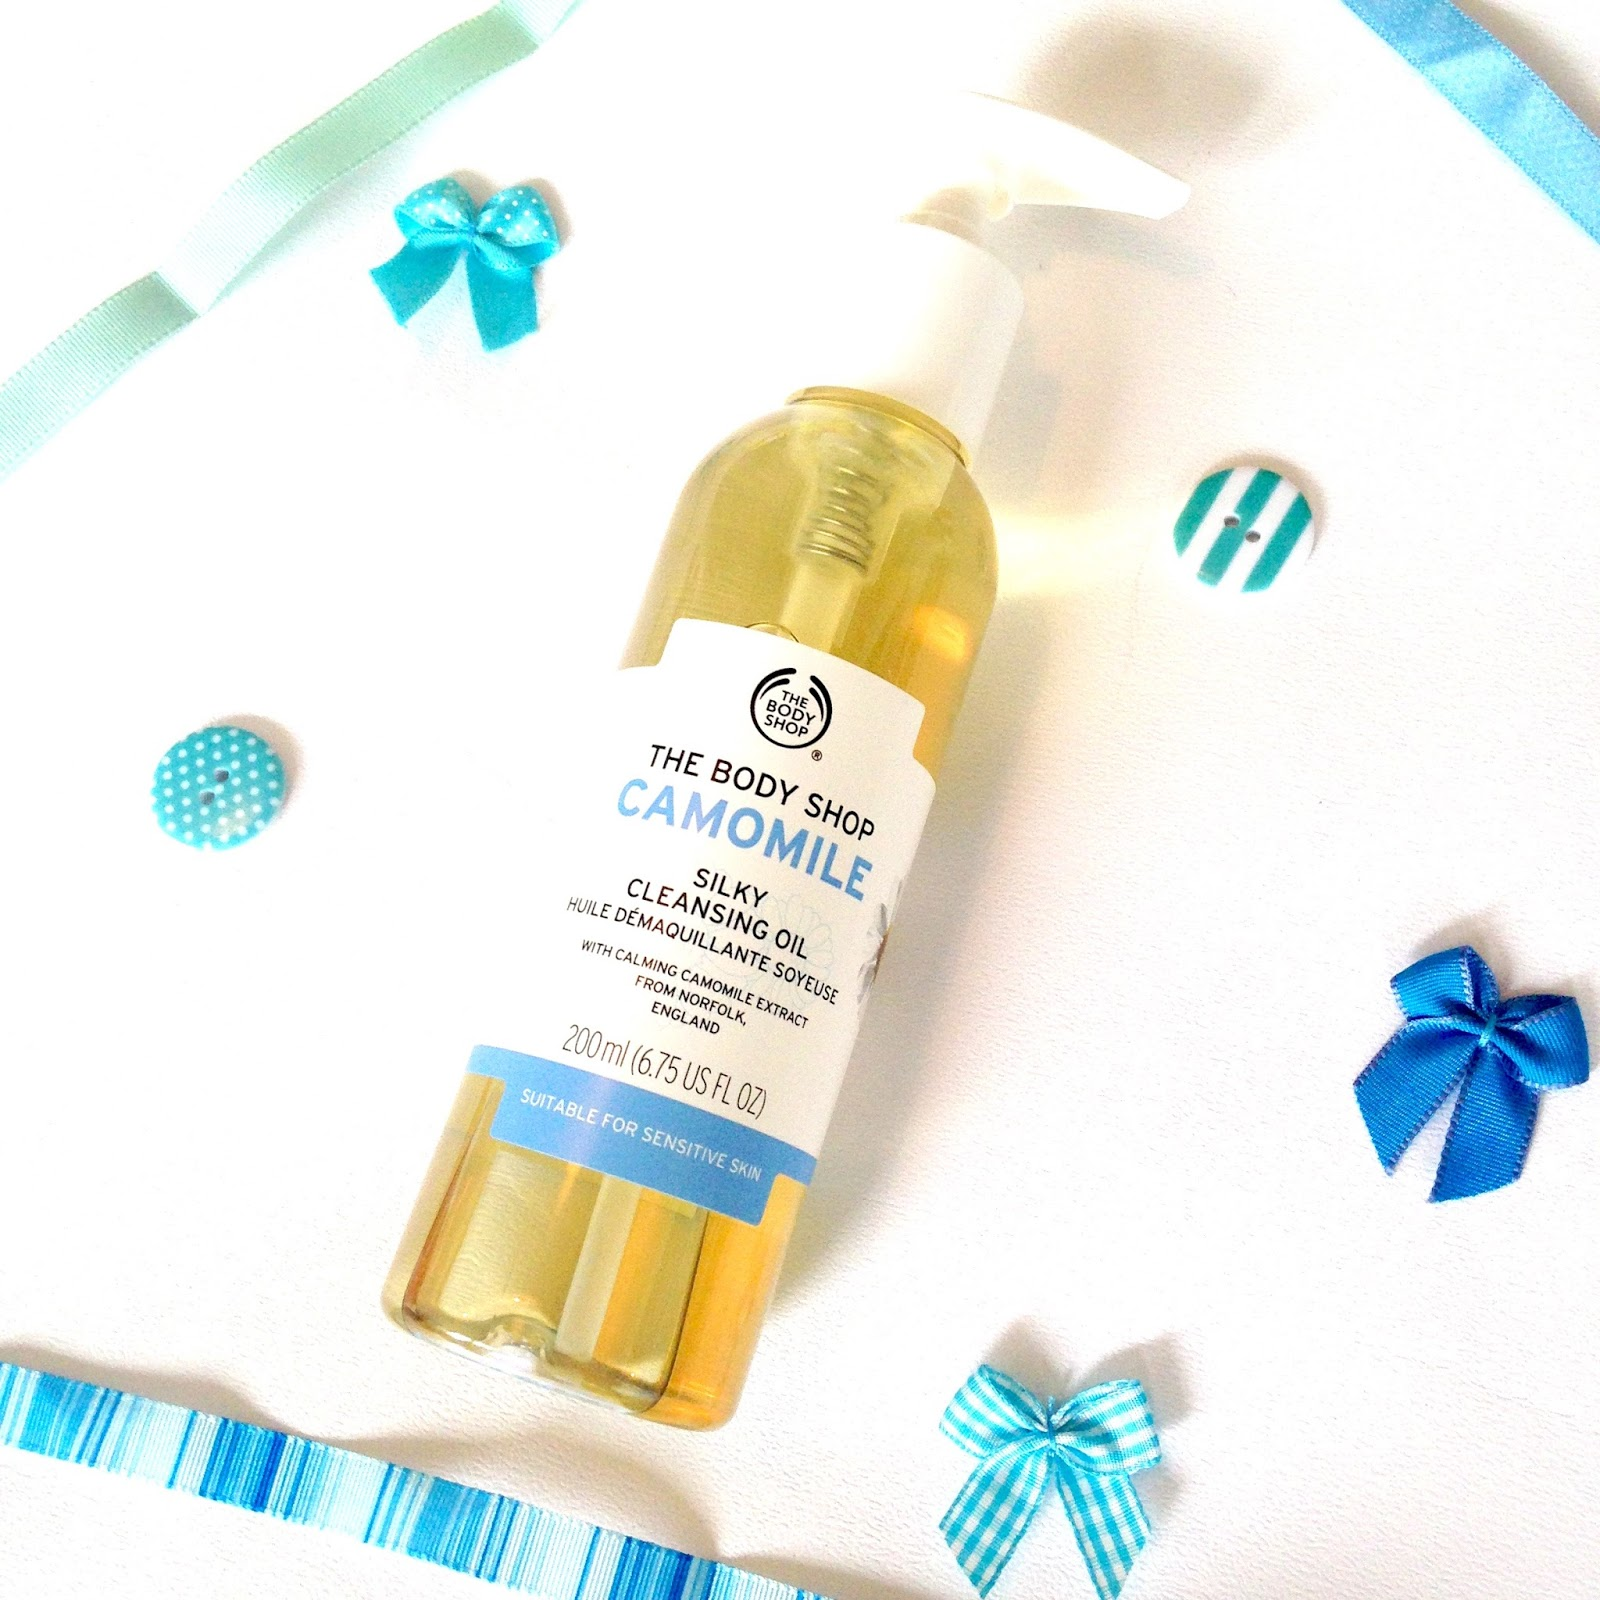 The Body Shop Camomile Cleansing Oil Review